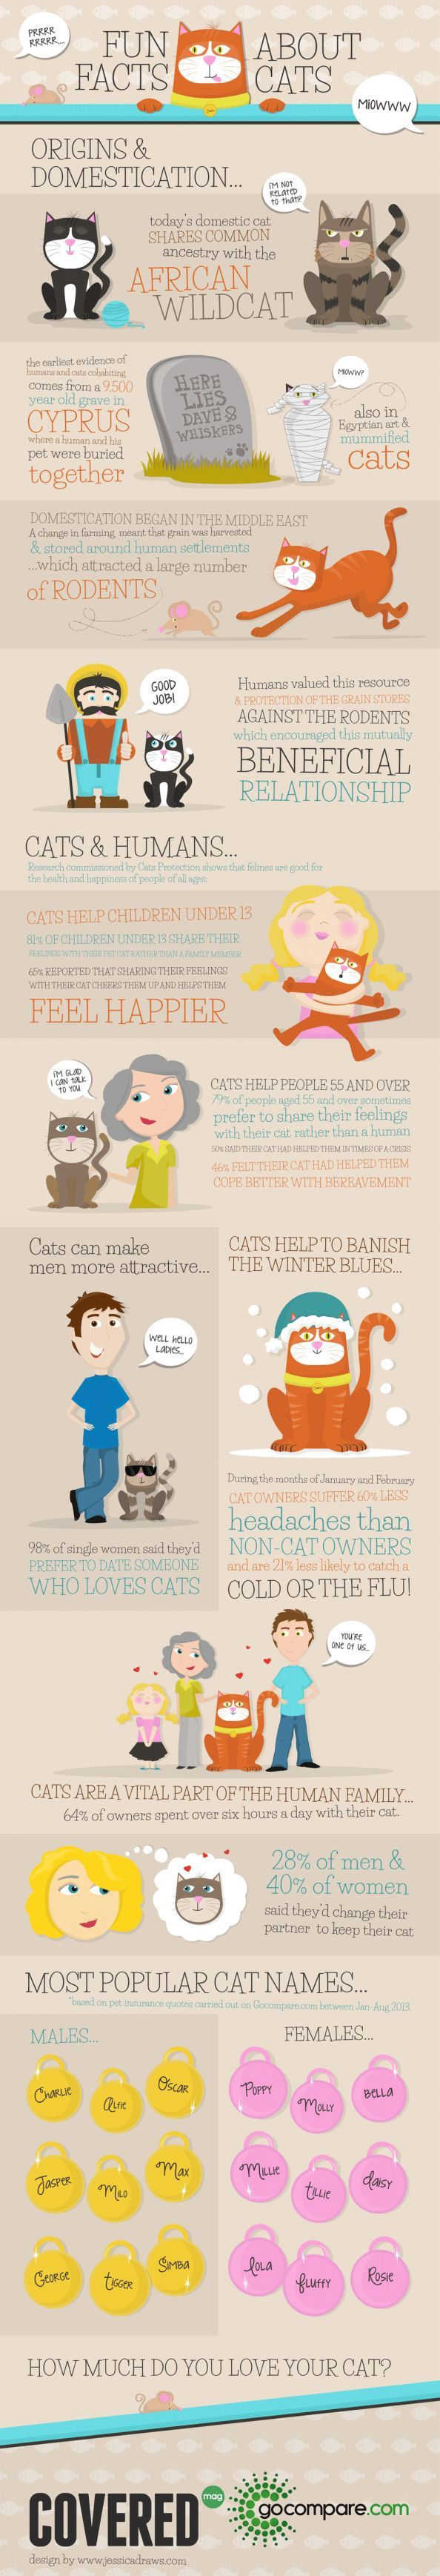 Fun Facts About Cats Infographic #tuxedocat - More fact about Tuxedo cat at Catsincare.com!